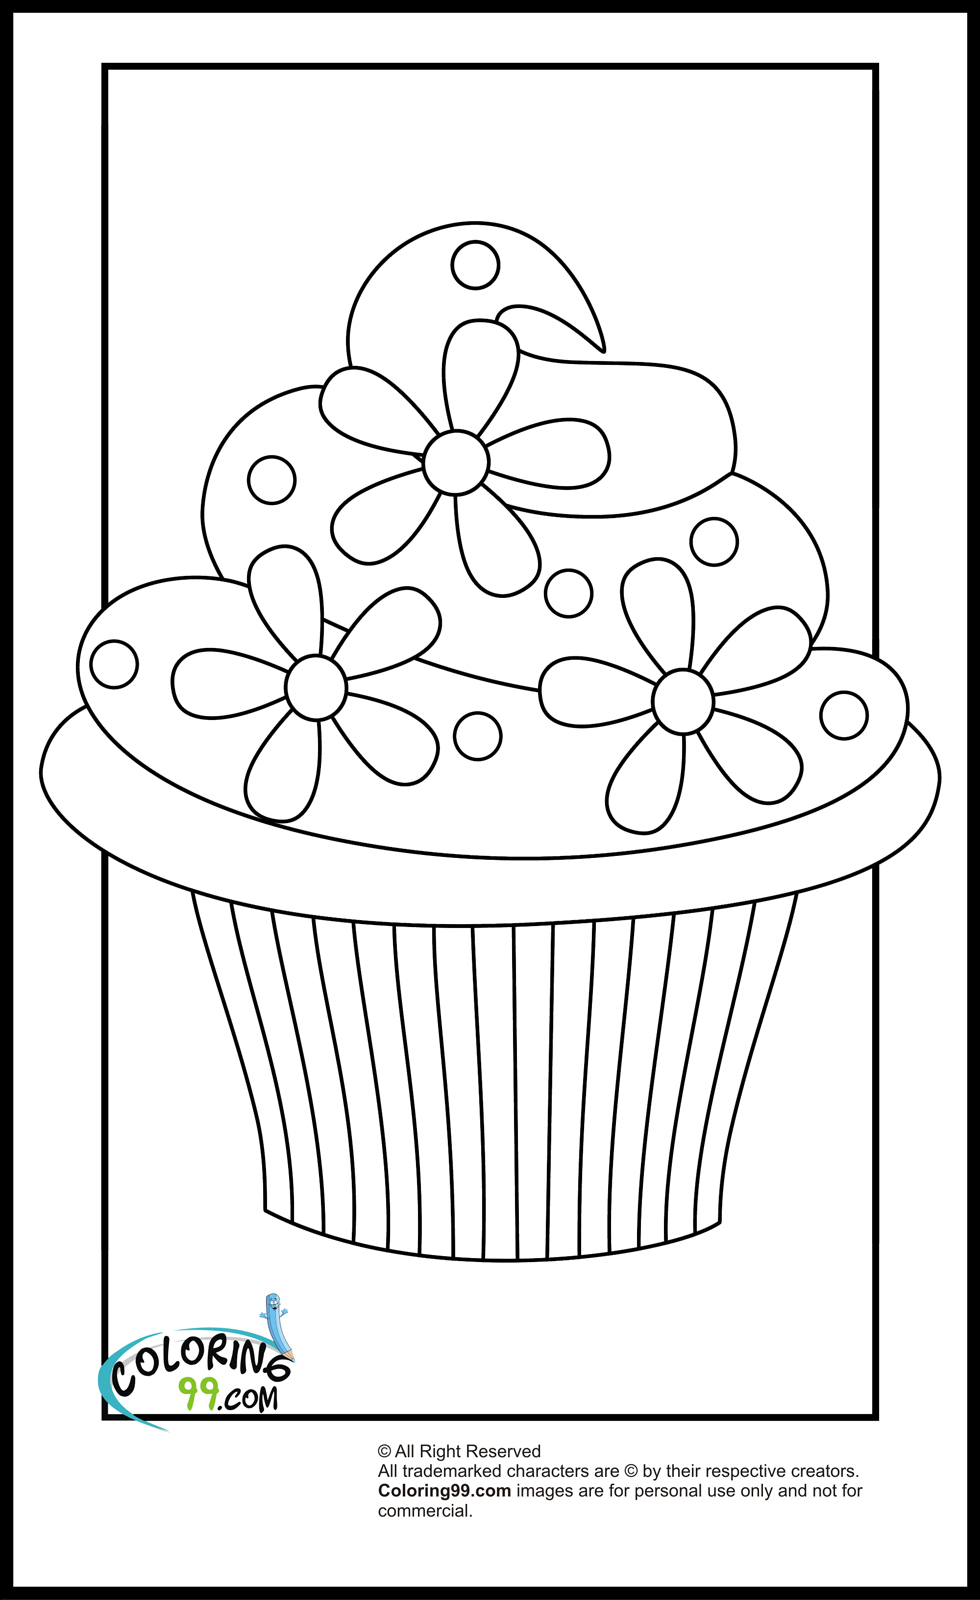 Cupcake Coloring Pages | Team colors